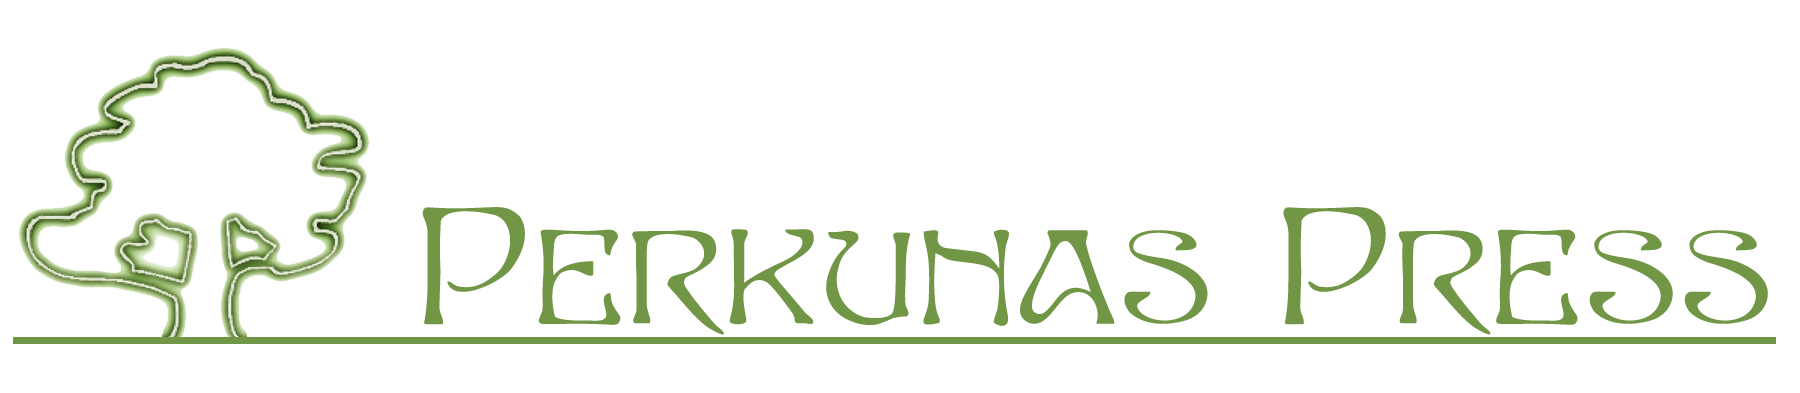 Perkunas Press